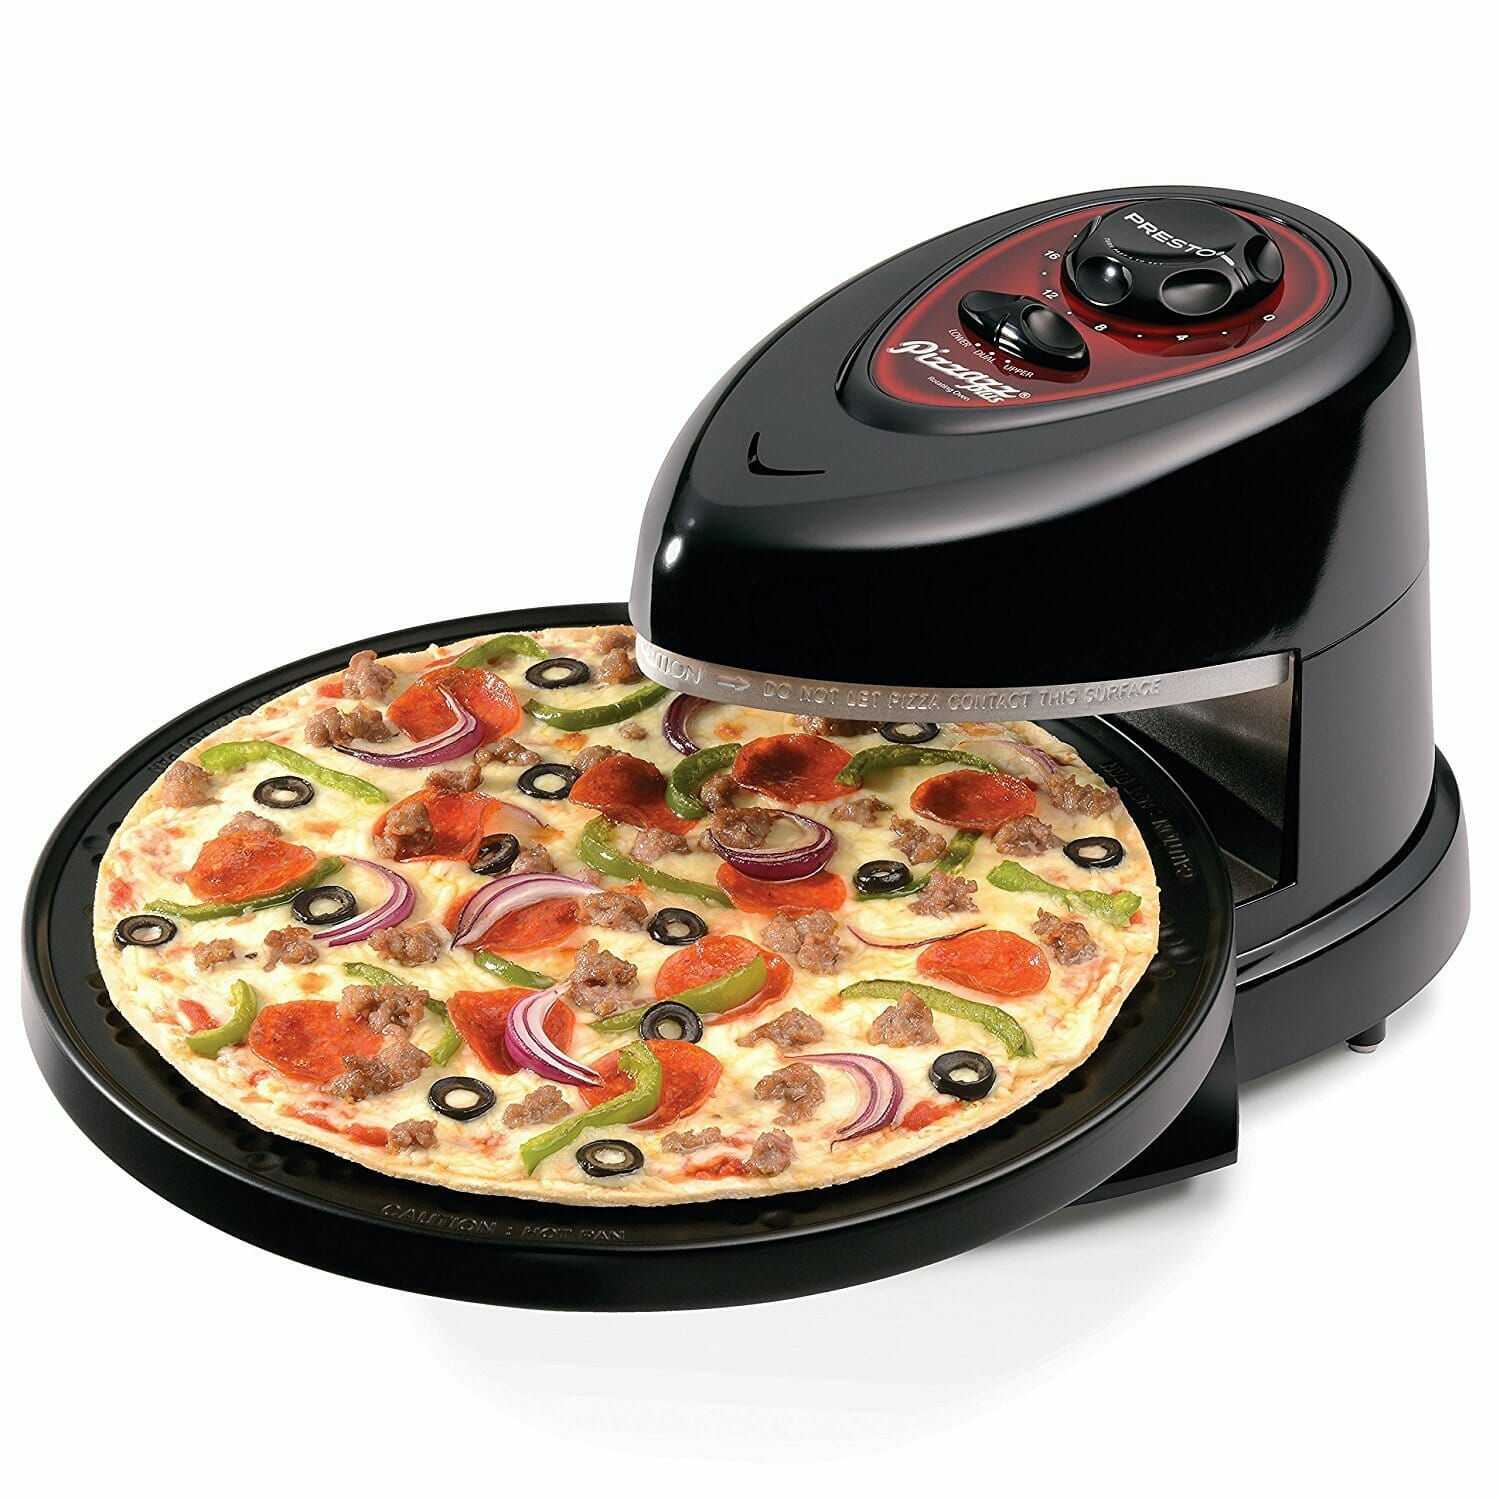 Gifts For Brother Rotating Pizza Oven